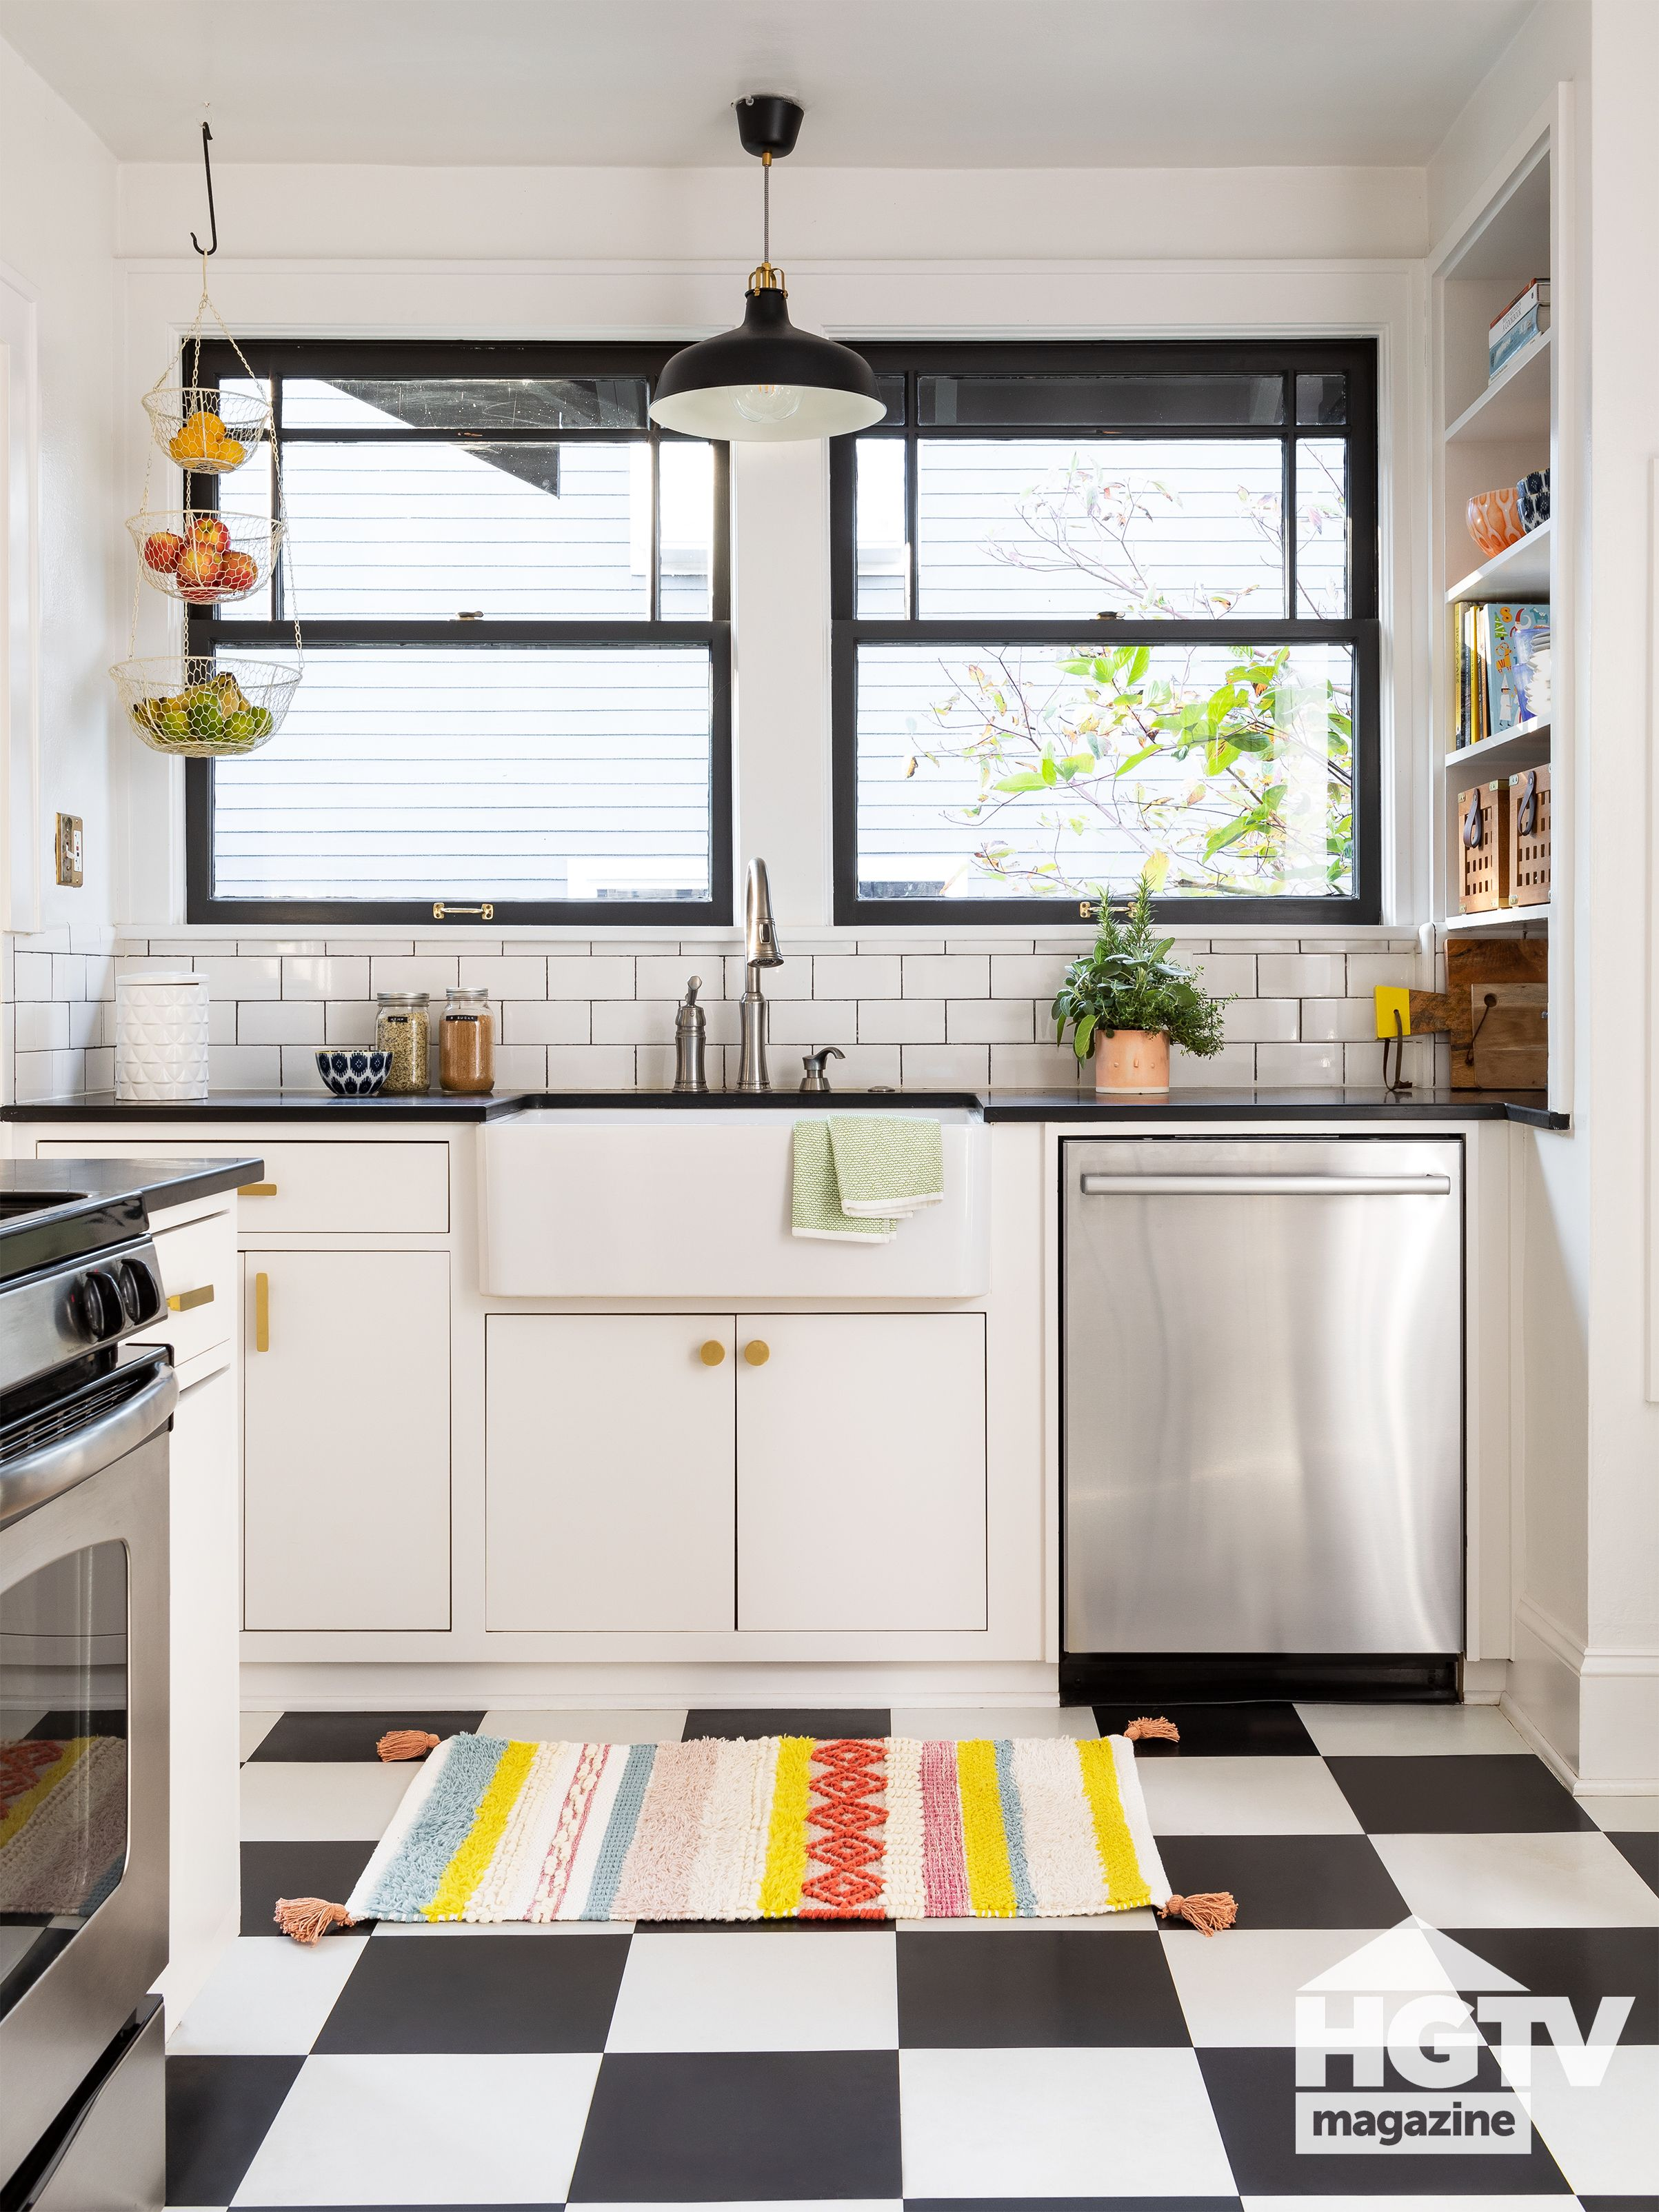 Black And White Kitchen From Hgtv Magazine In 2020 Simple Kitchen Small American Kitchens Kitchen Remodel